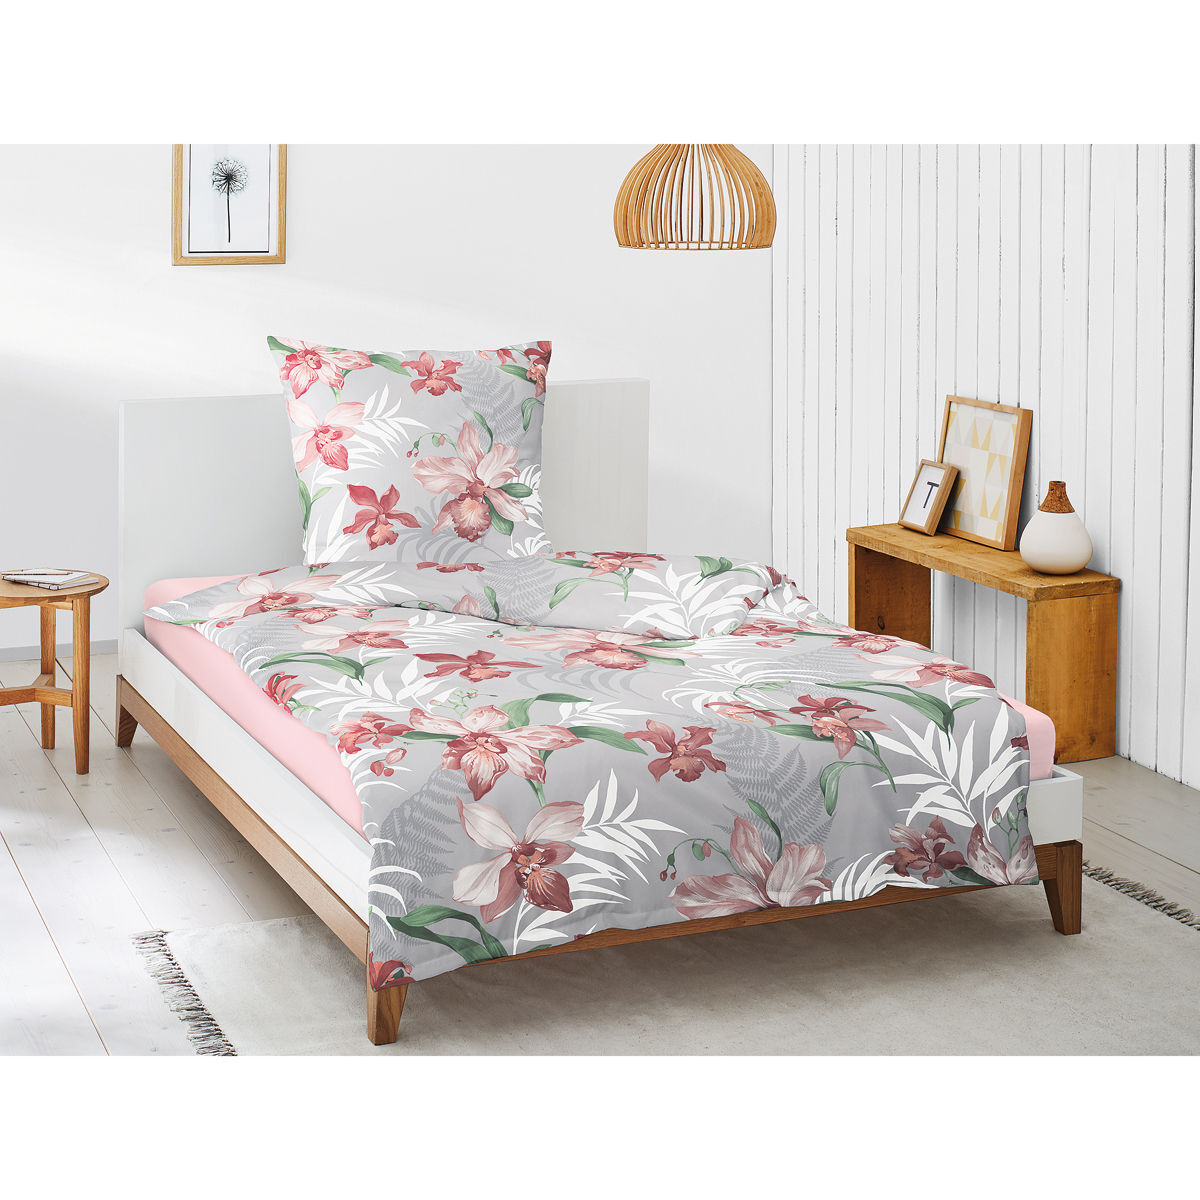 irisette interlock jersey bettw sche flora 135x200 cm karstadt online shop. Black Bedroom Furniture Sets. Home Design Ideas